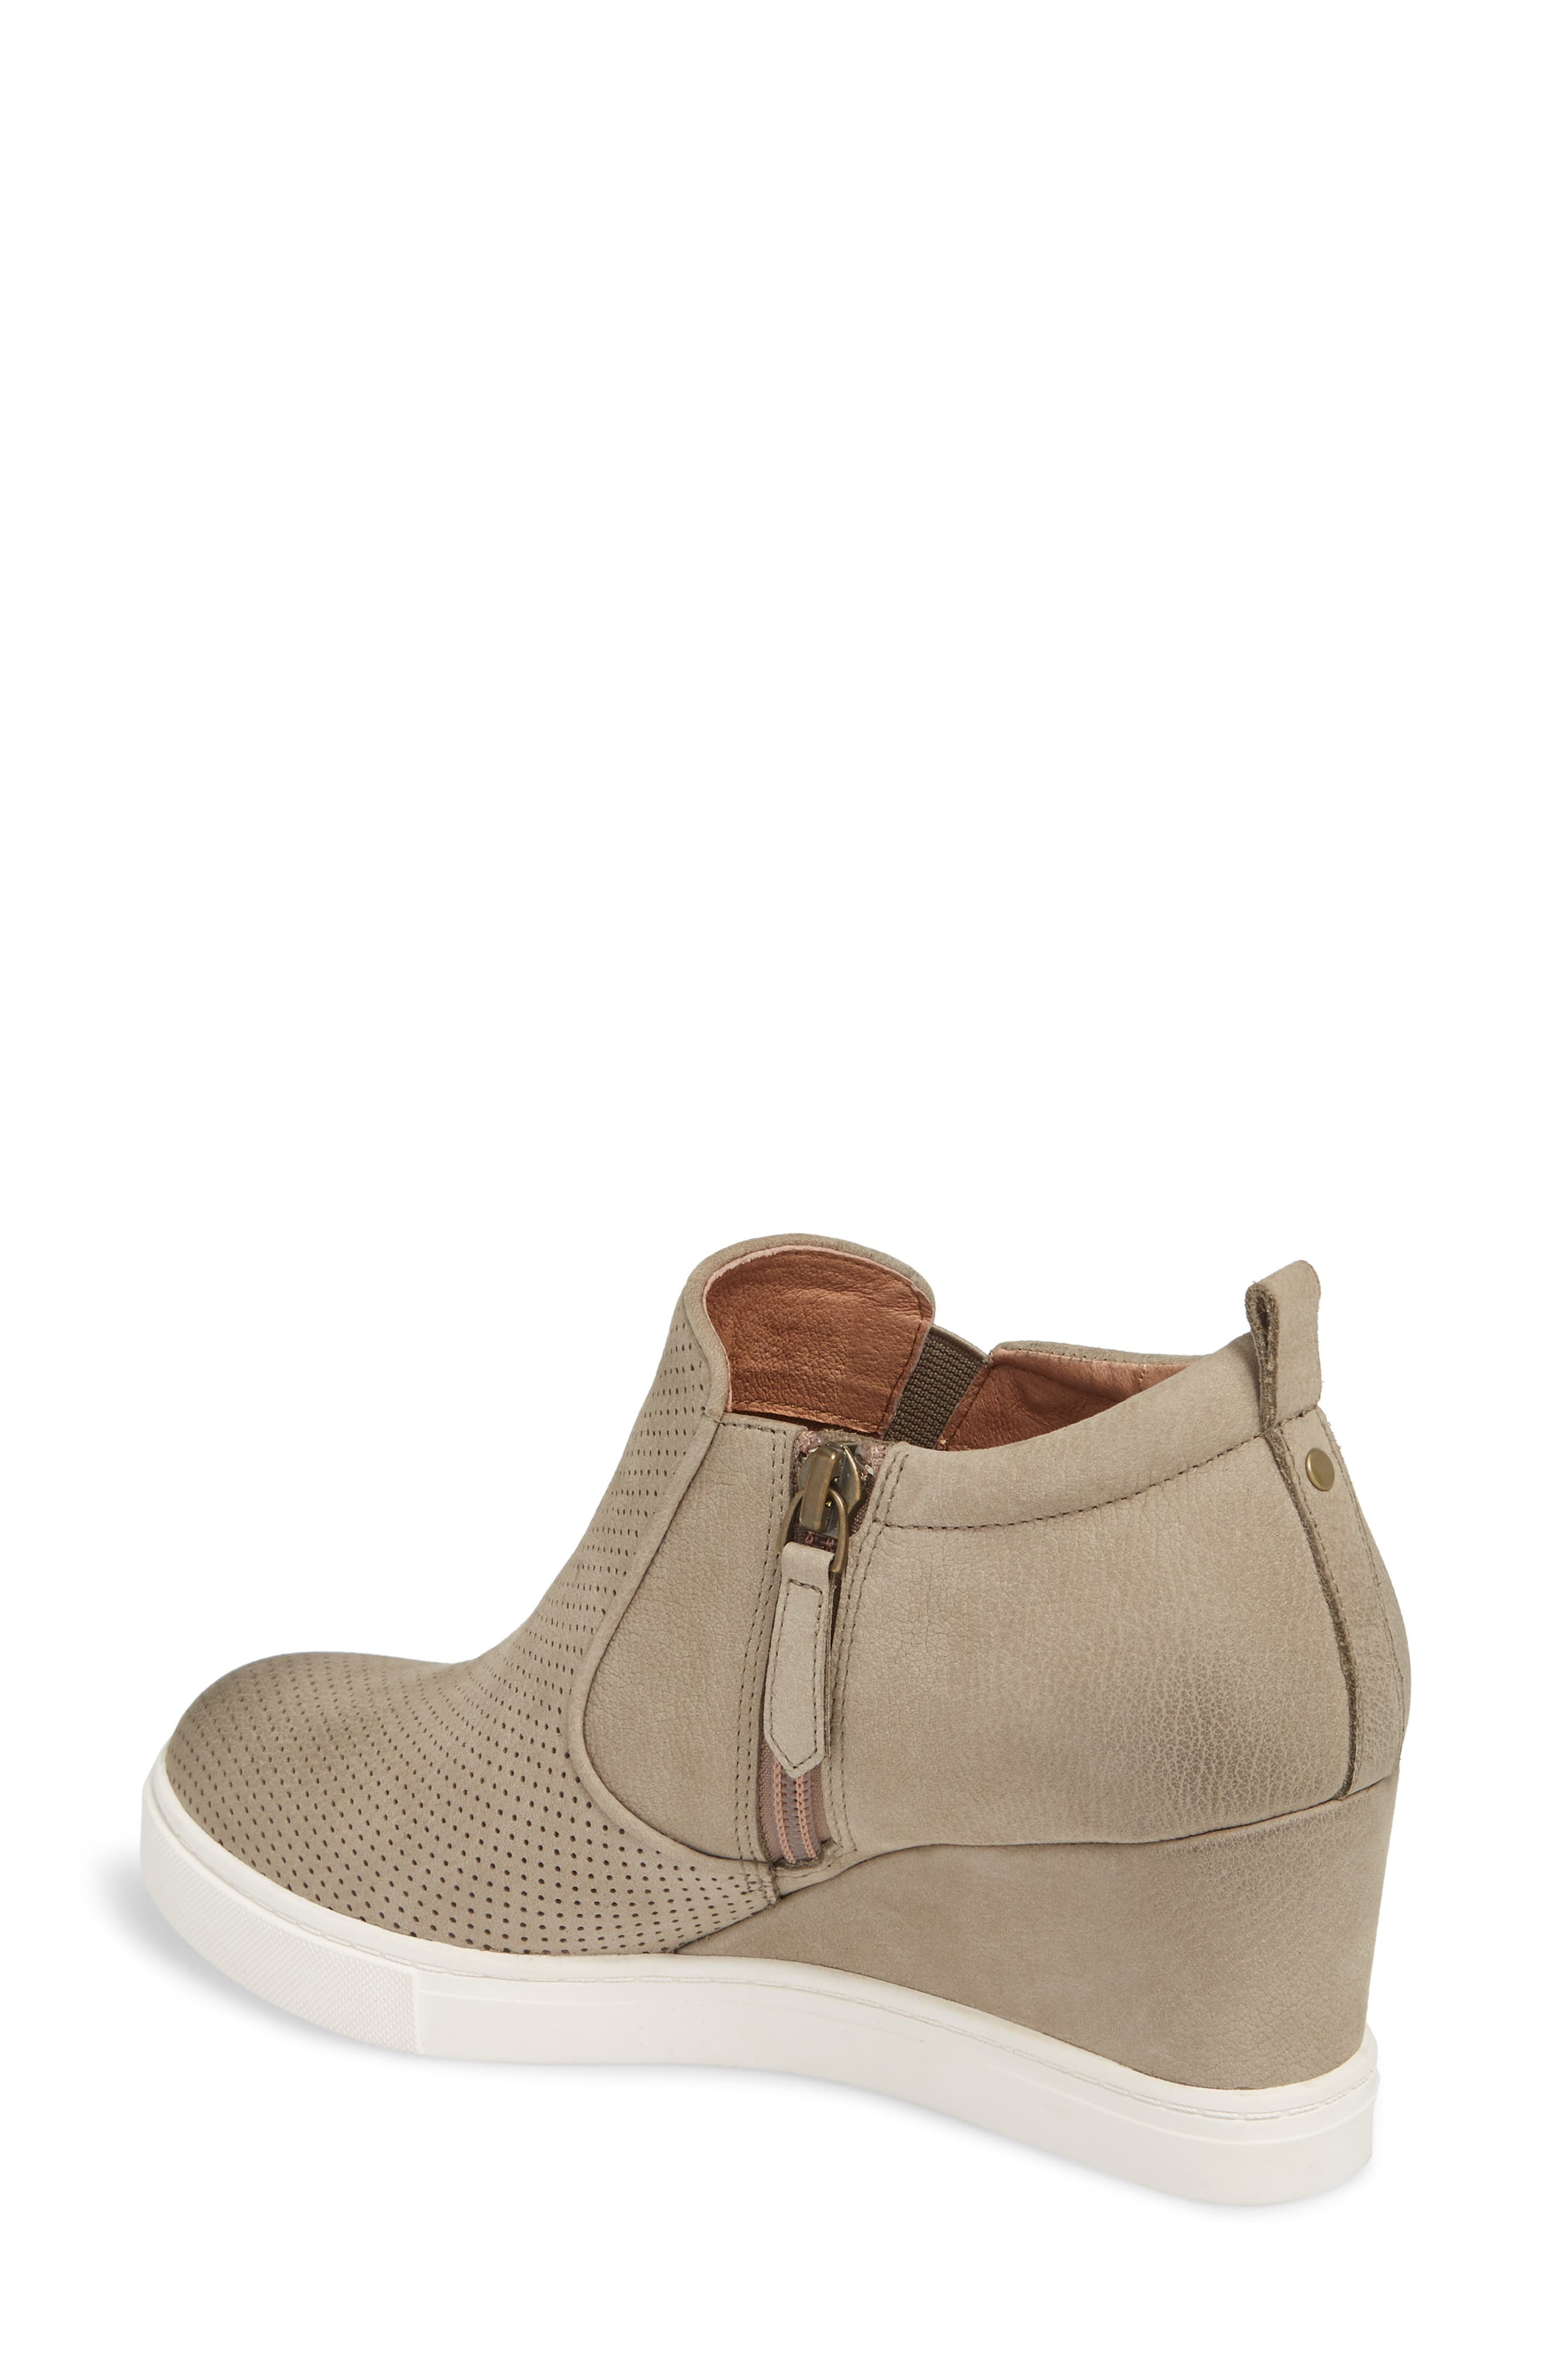 Aiden Wedge Sneaker,                             Alternate thumbnail 2, color,                             260